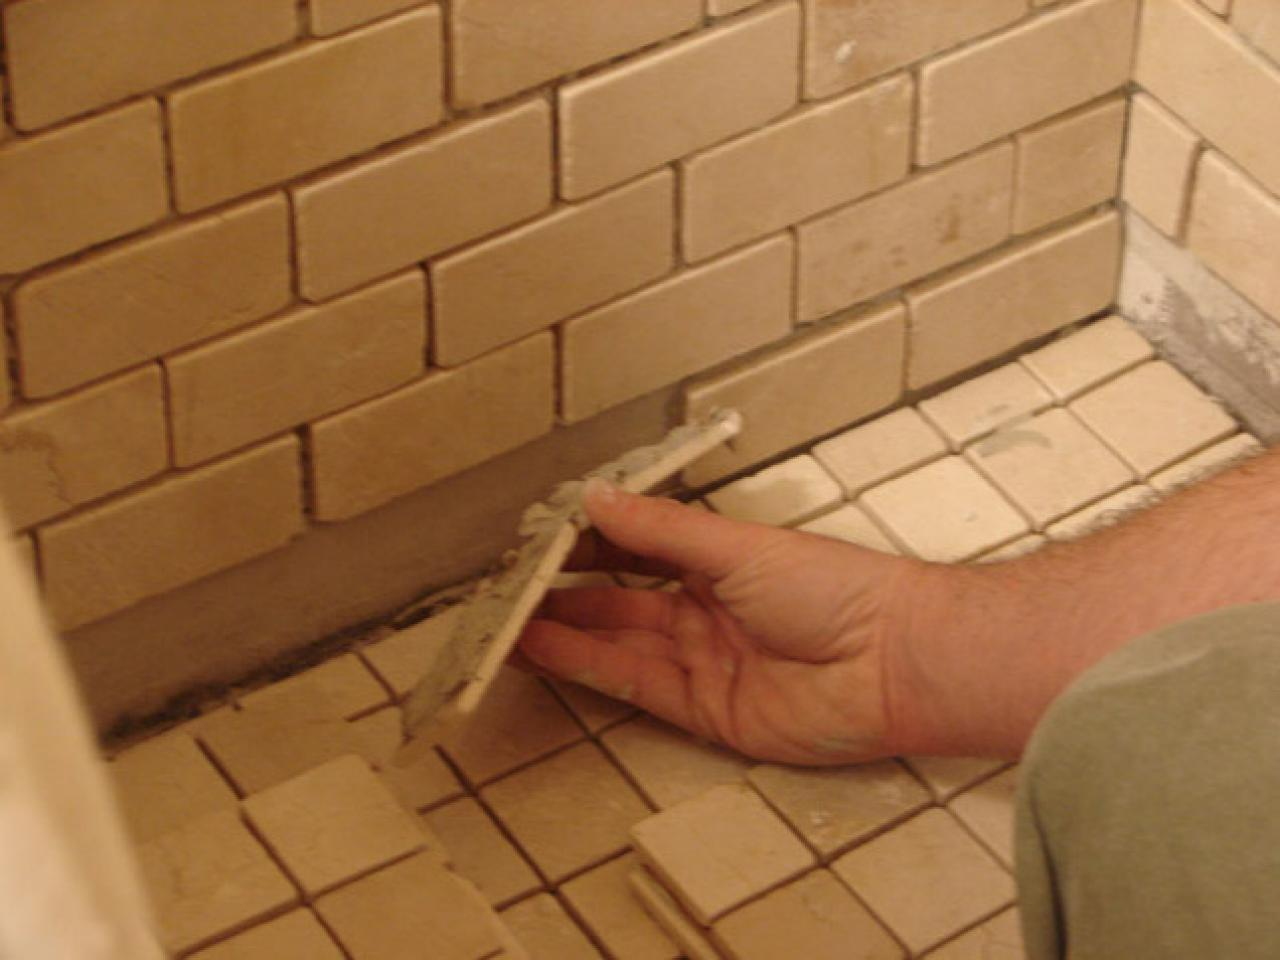 Diy bathroom tile - Step 8